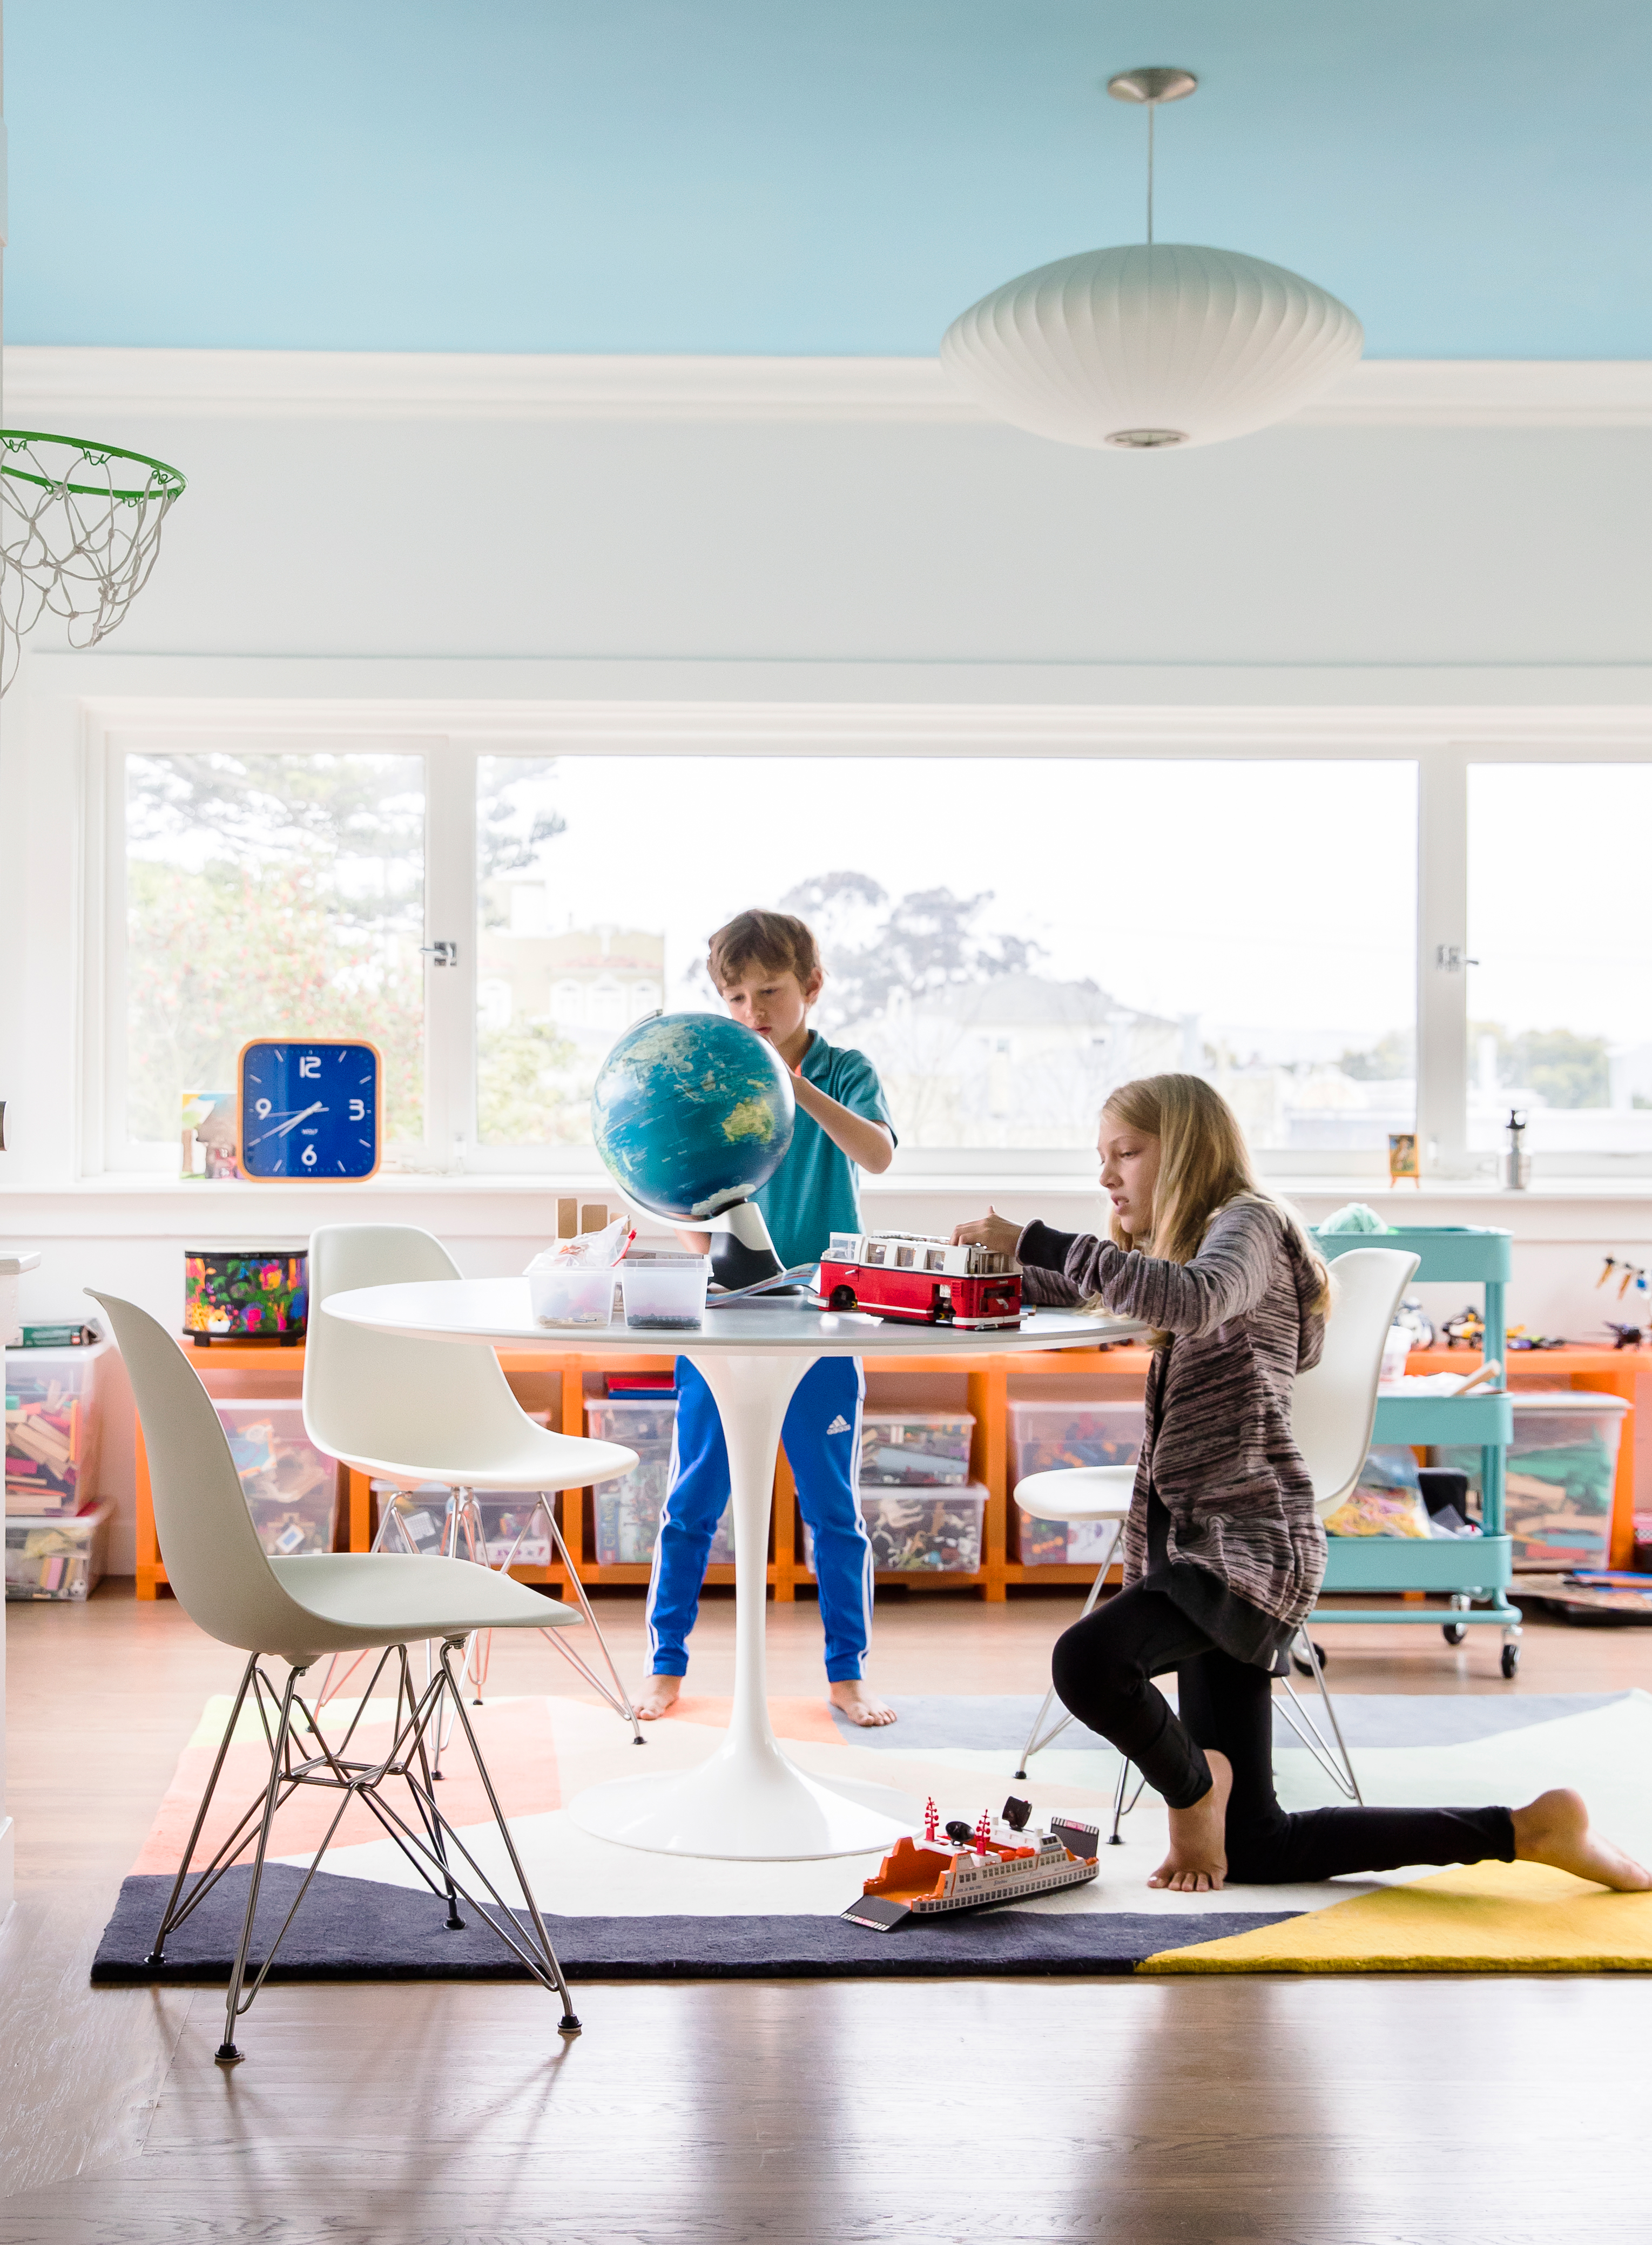 How to Balance a Minimalist Home Design with Fun Elements - Sunset ...